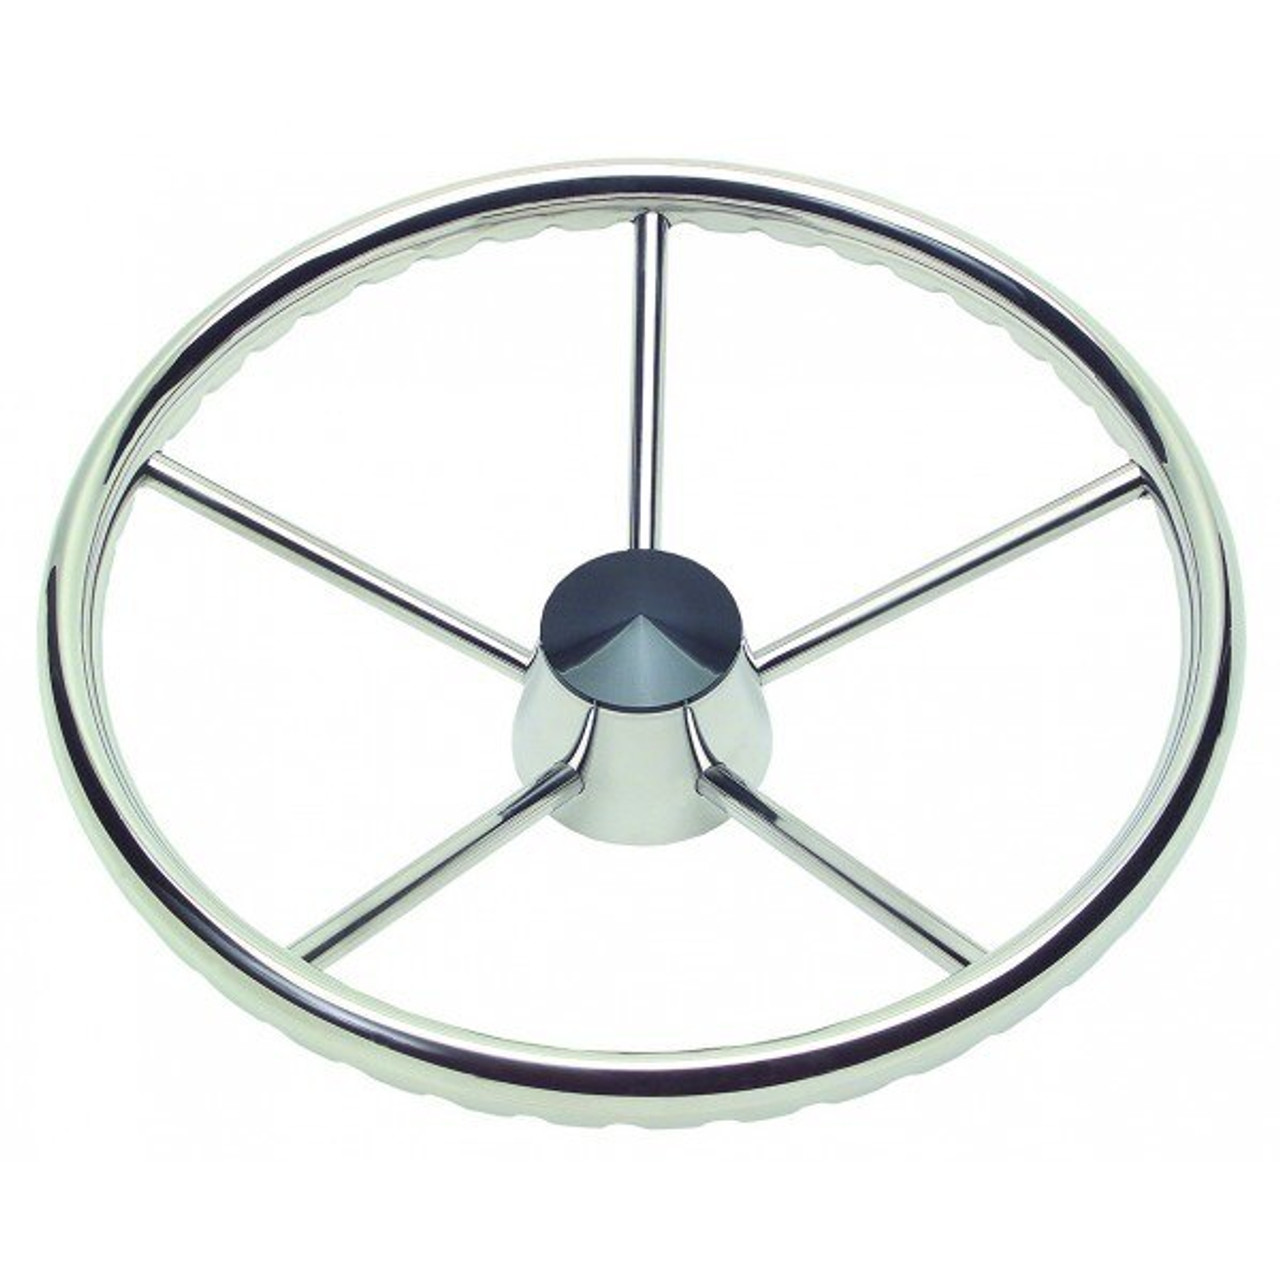 "Ongaro 170 13.5/"" Stainless 5-Spoke Destroyer Wheel w// Stainless Cap and FingerGr"